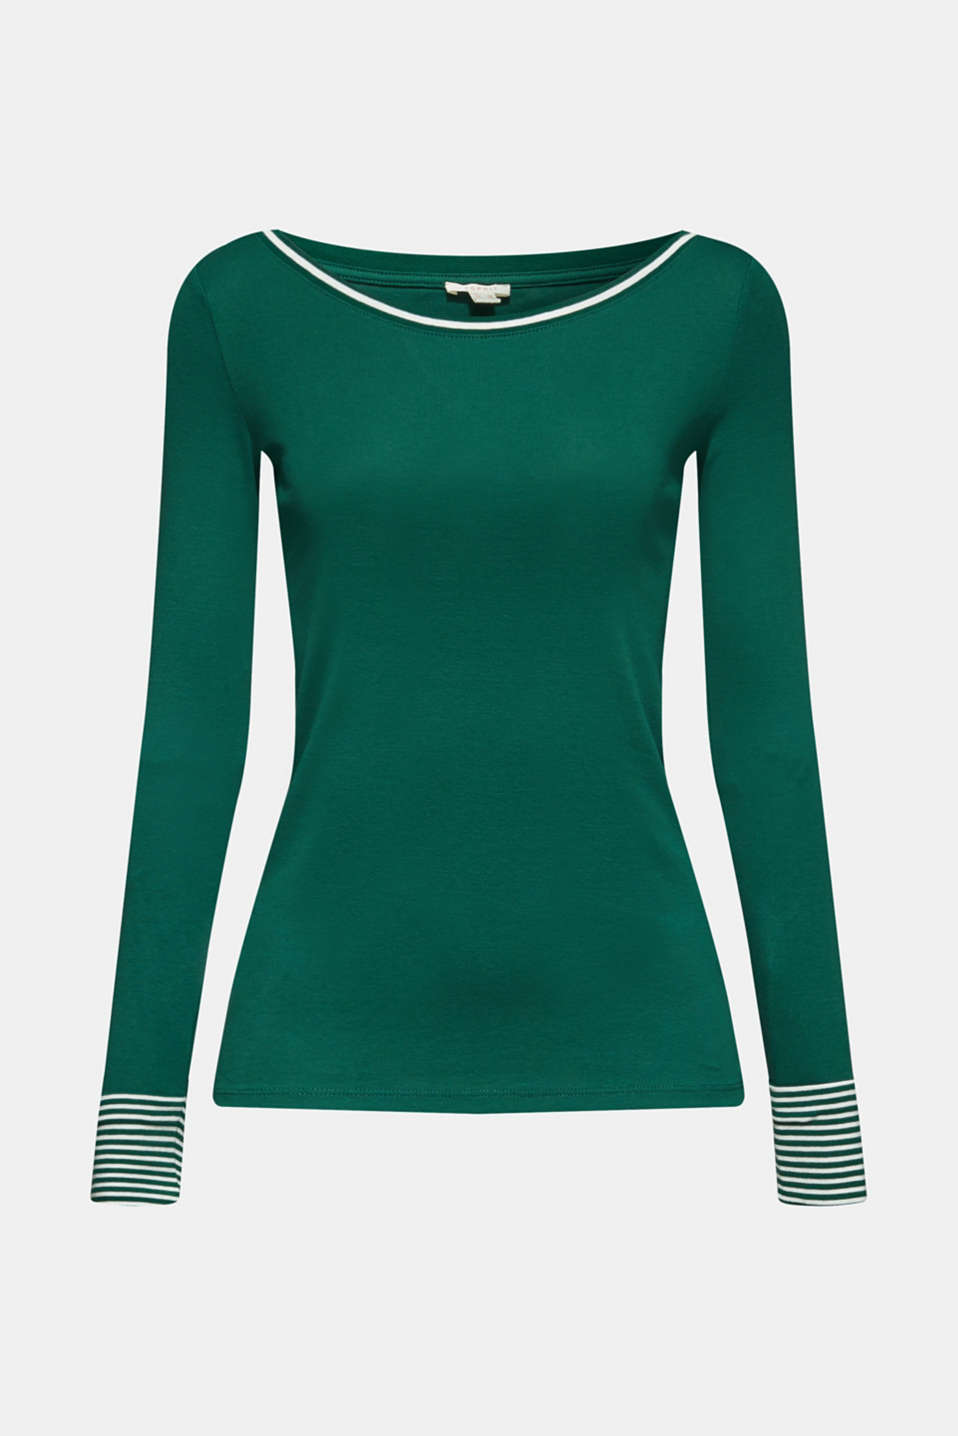 Long sleeve top with striped borders, 100% cotton, BOTTLE GREEN, detail image number 6